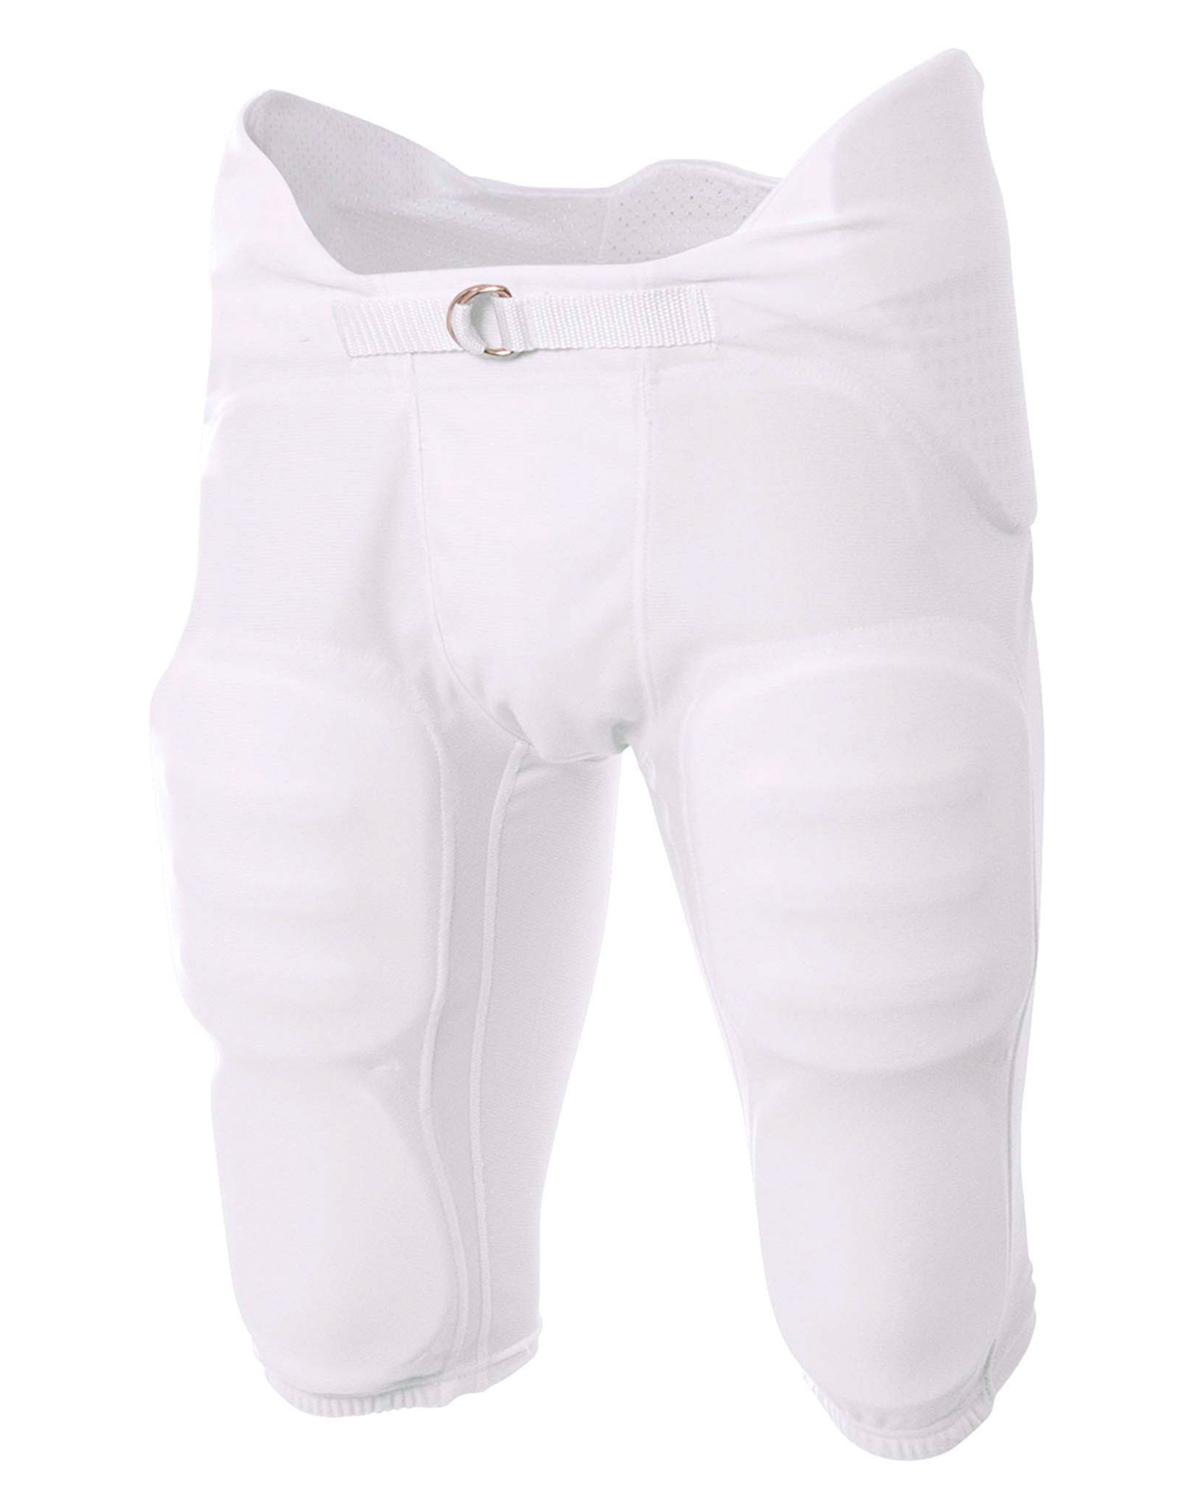 A4 Drop Ship NB6180 - Youth Flyless Integrated Football Pants